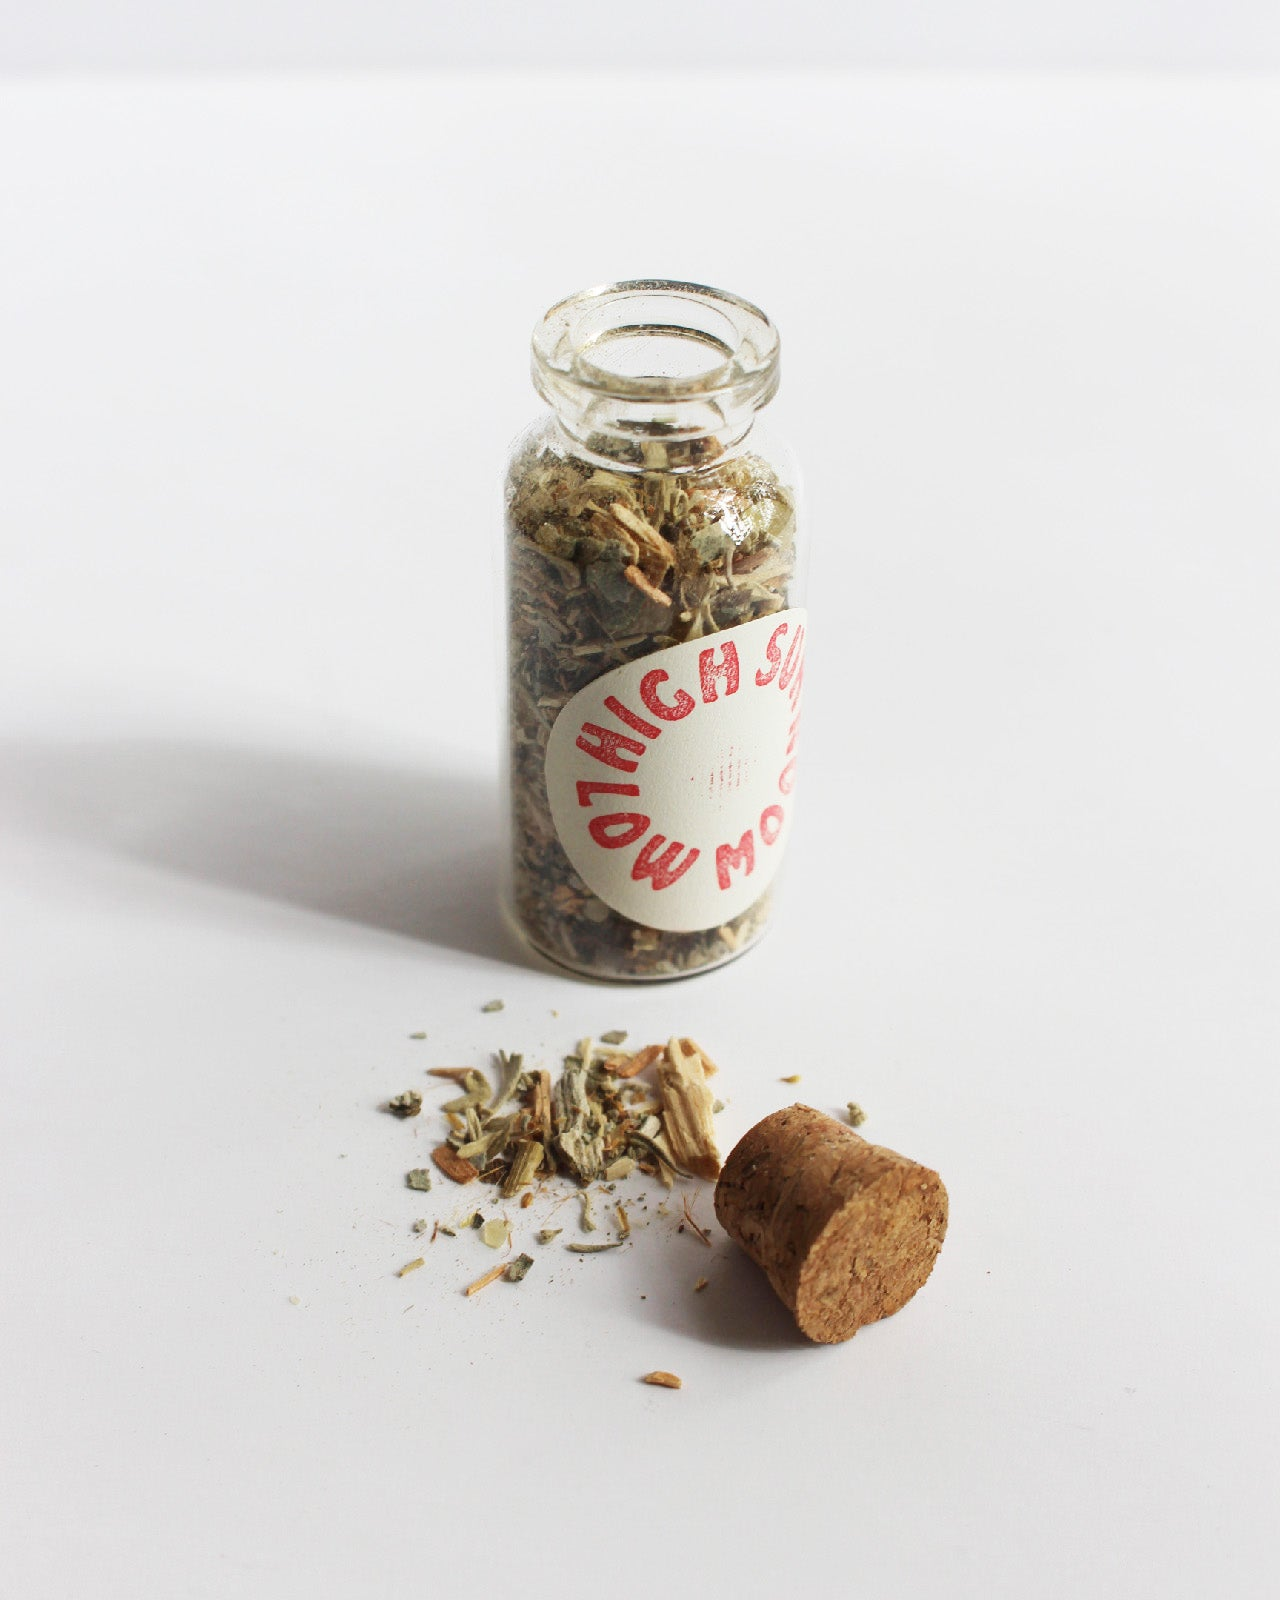 HIGH SUN LOW MOON - LOOSE INCENSE BLEND - LOW MOON